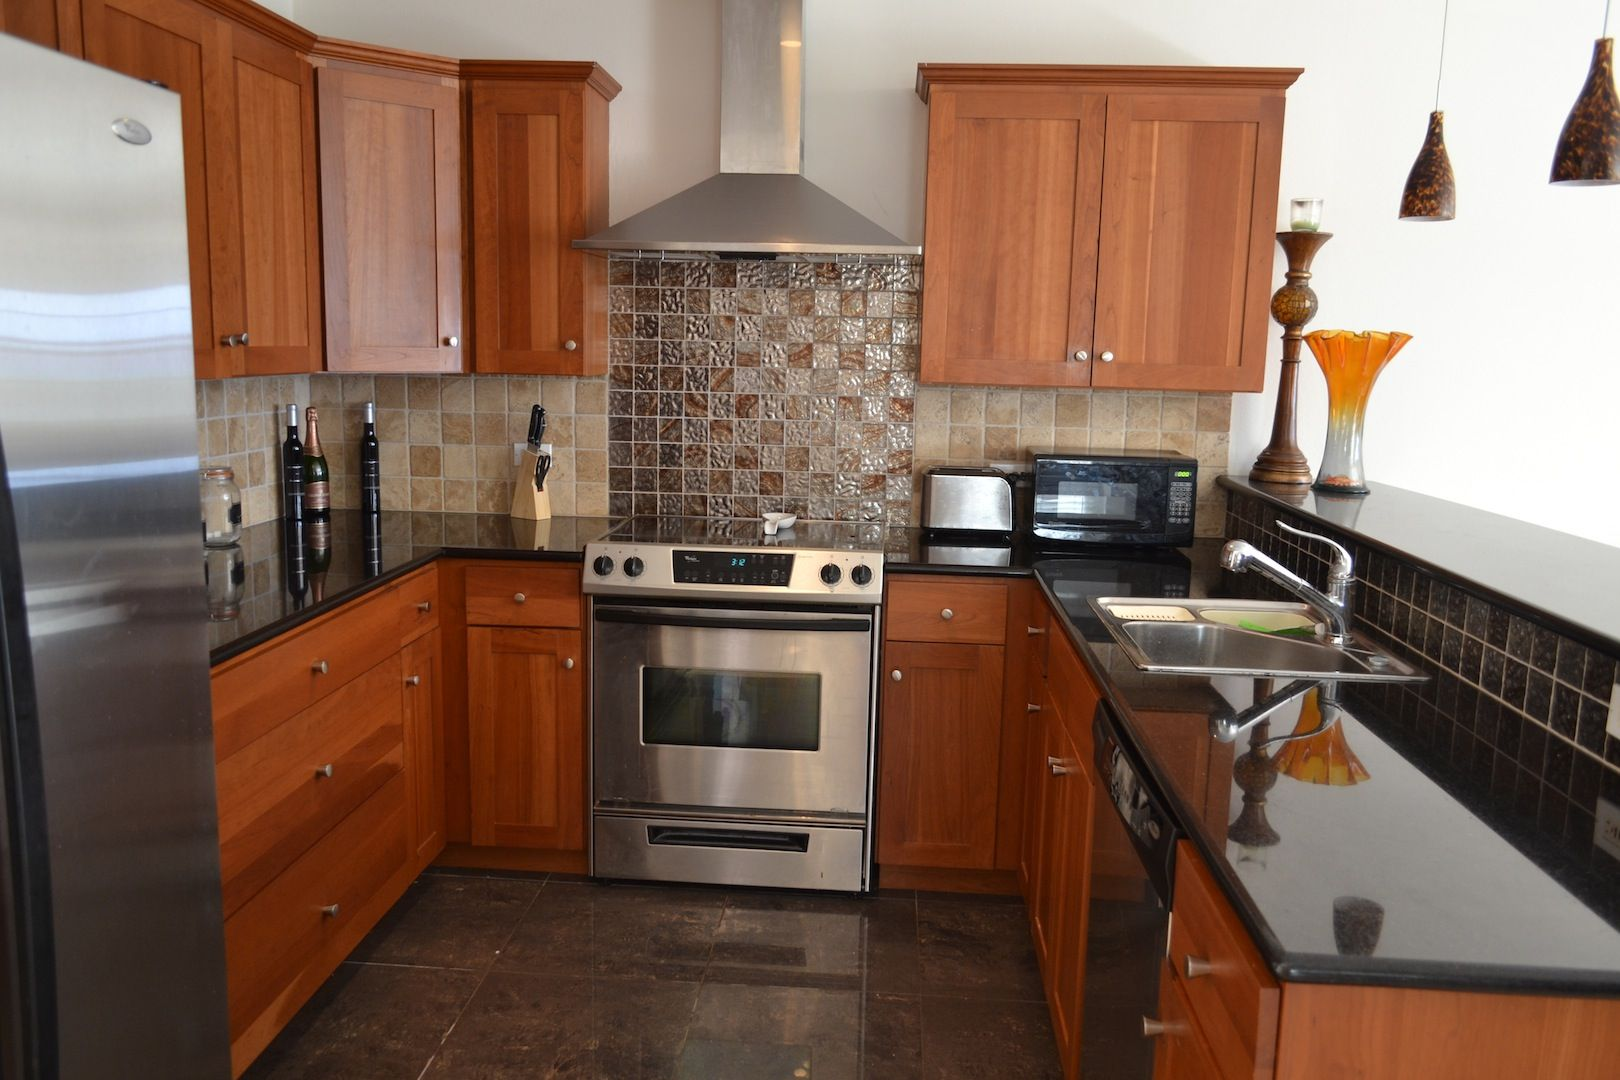 EXECUTIVE 1 BED 1BATH PRIVATE APT WITH VIEWS IN DEVONSHIRE